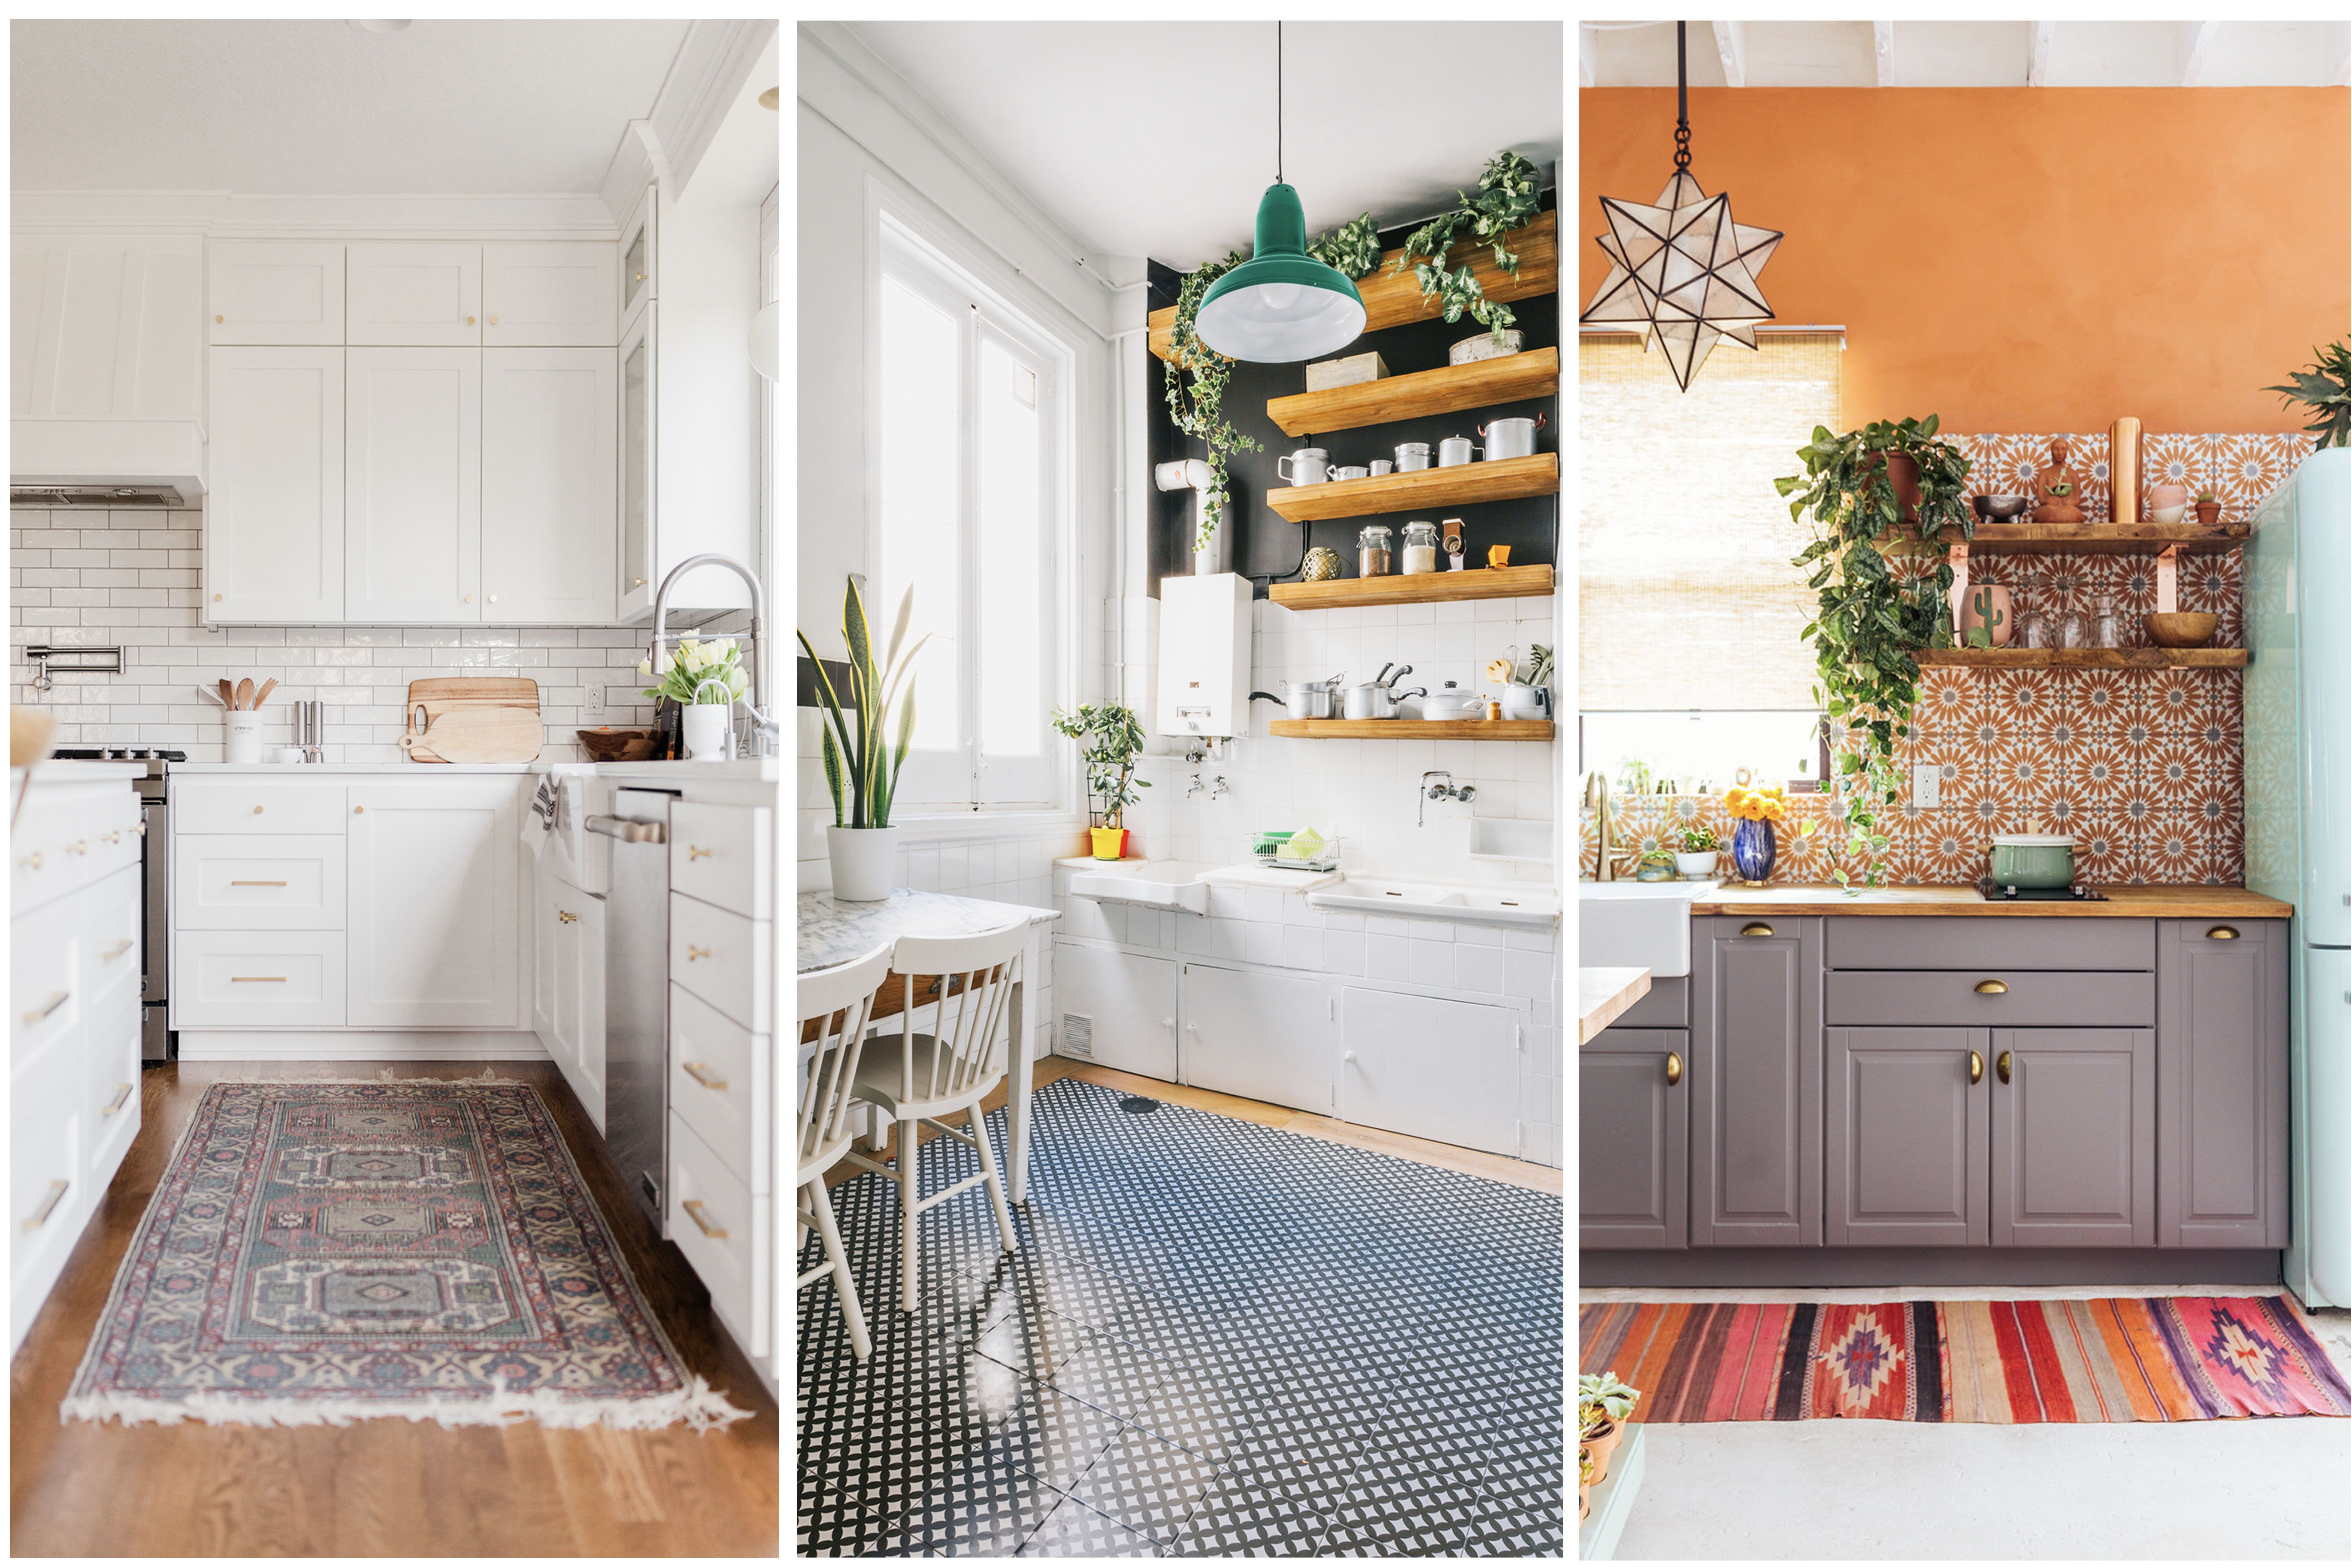 Home Decor Trends From The 2000s To The 2020s